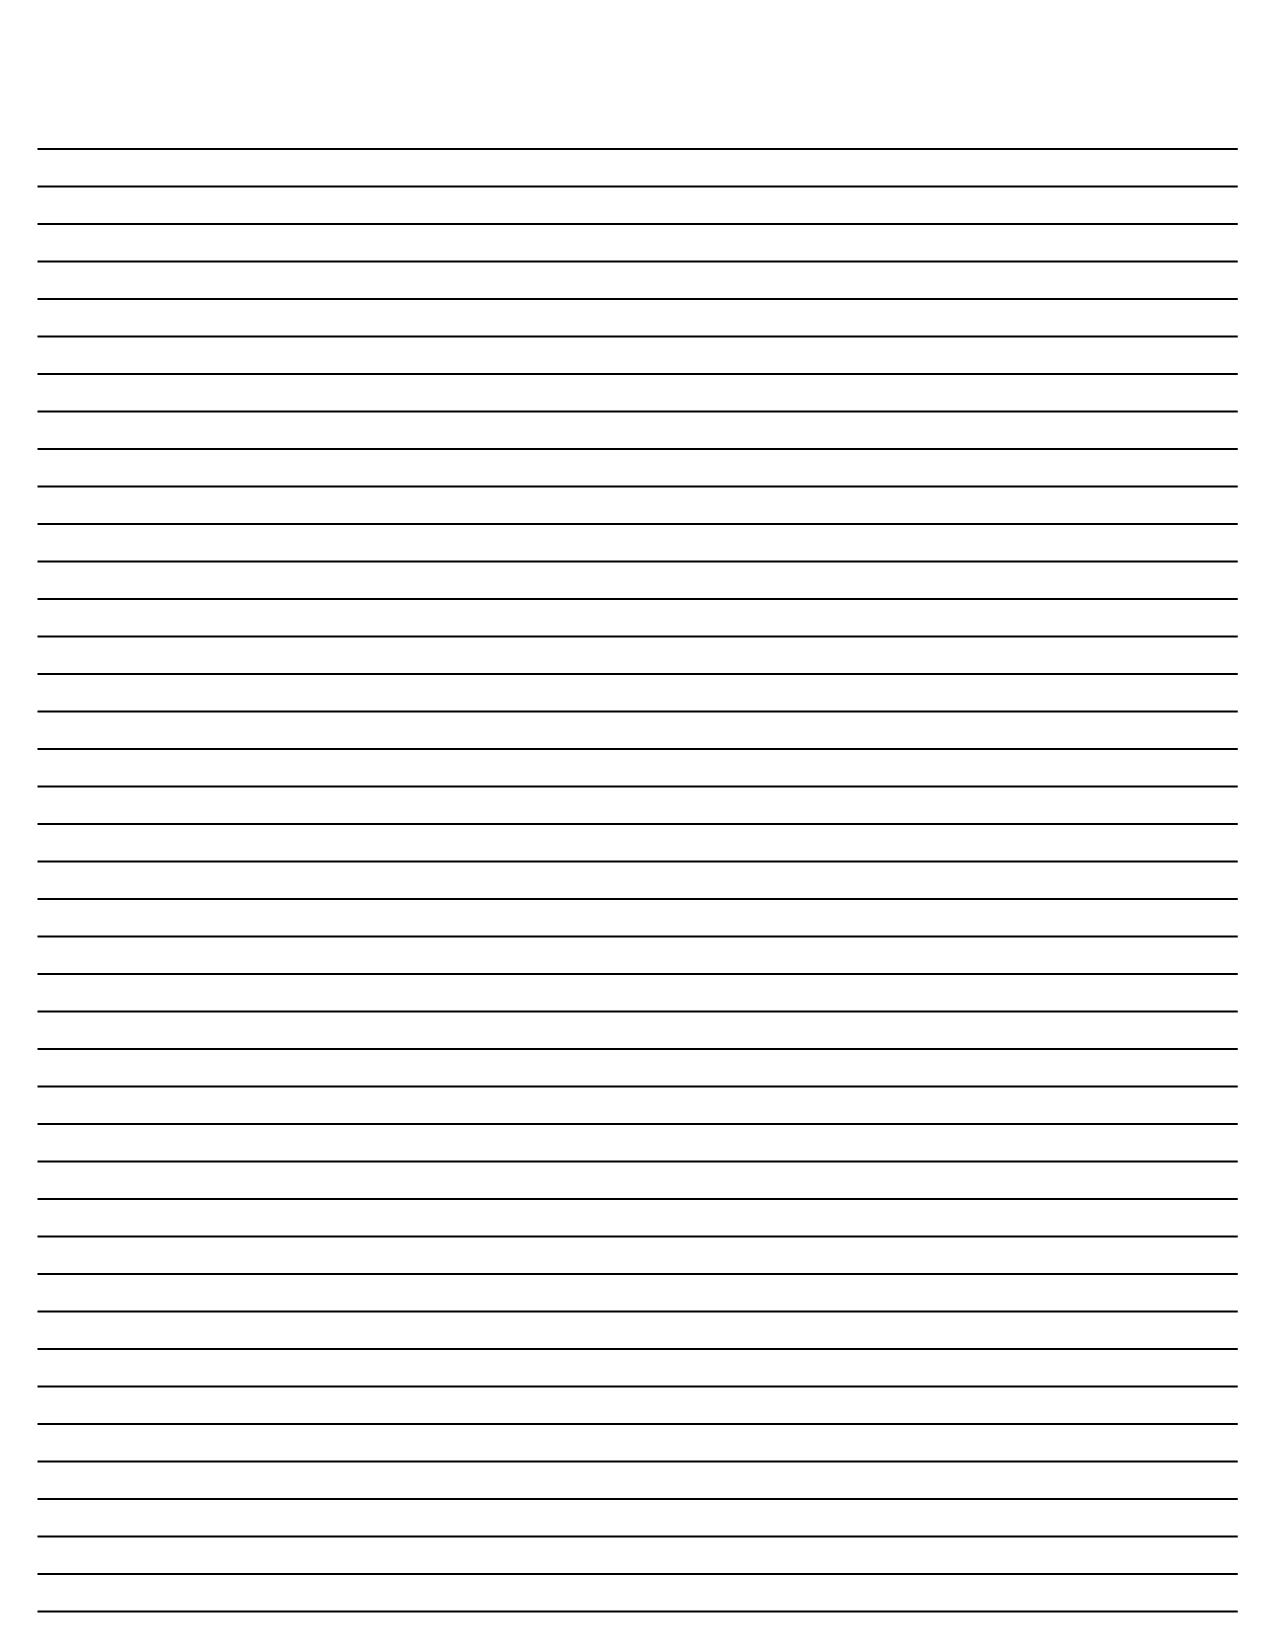 Free Printable Lined Writing Paper Template